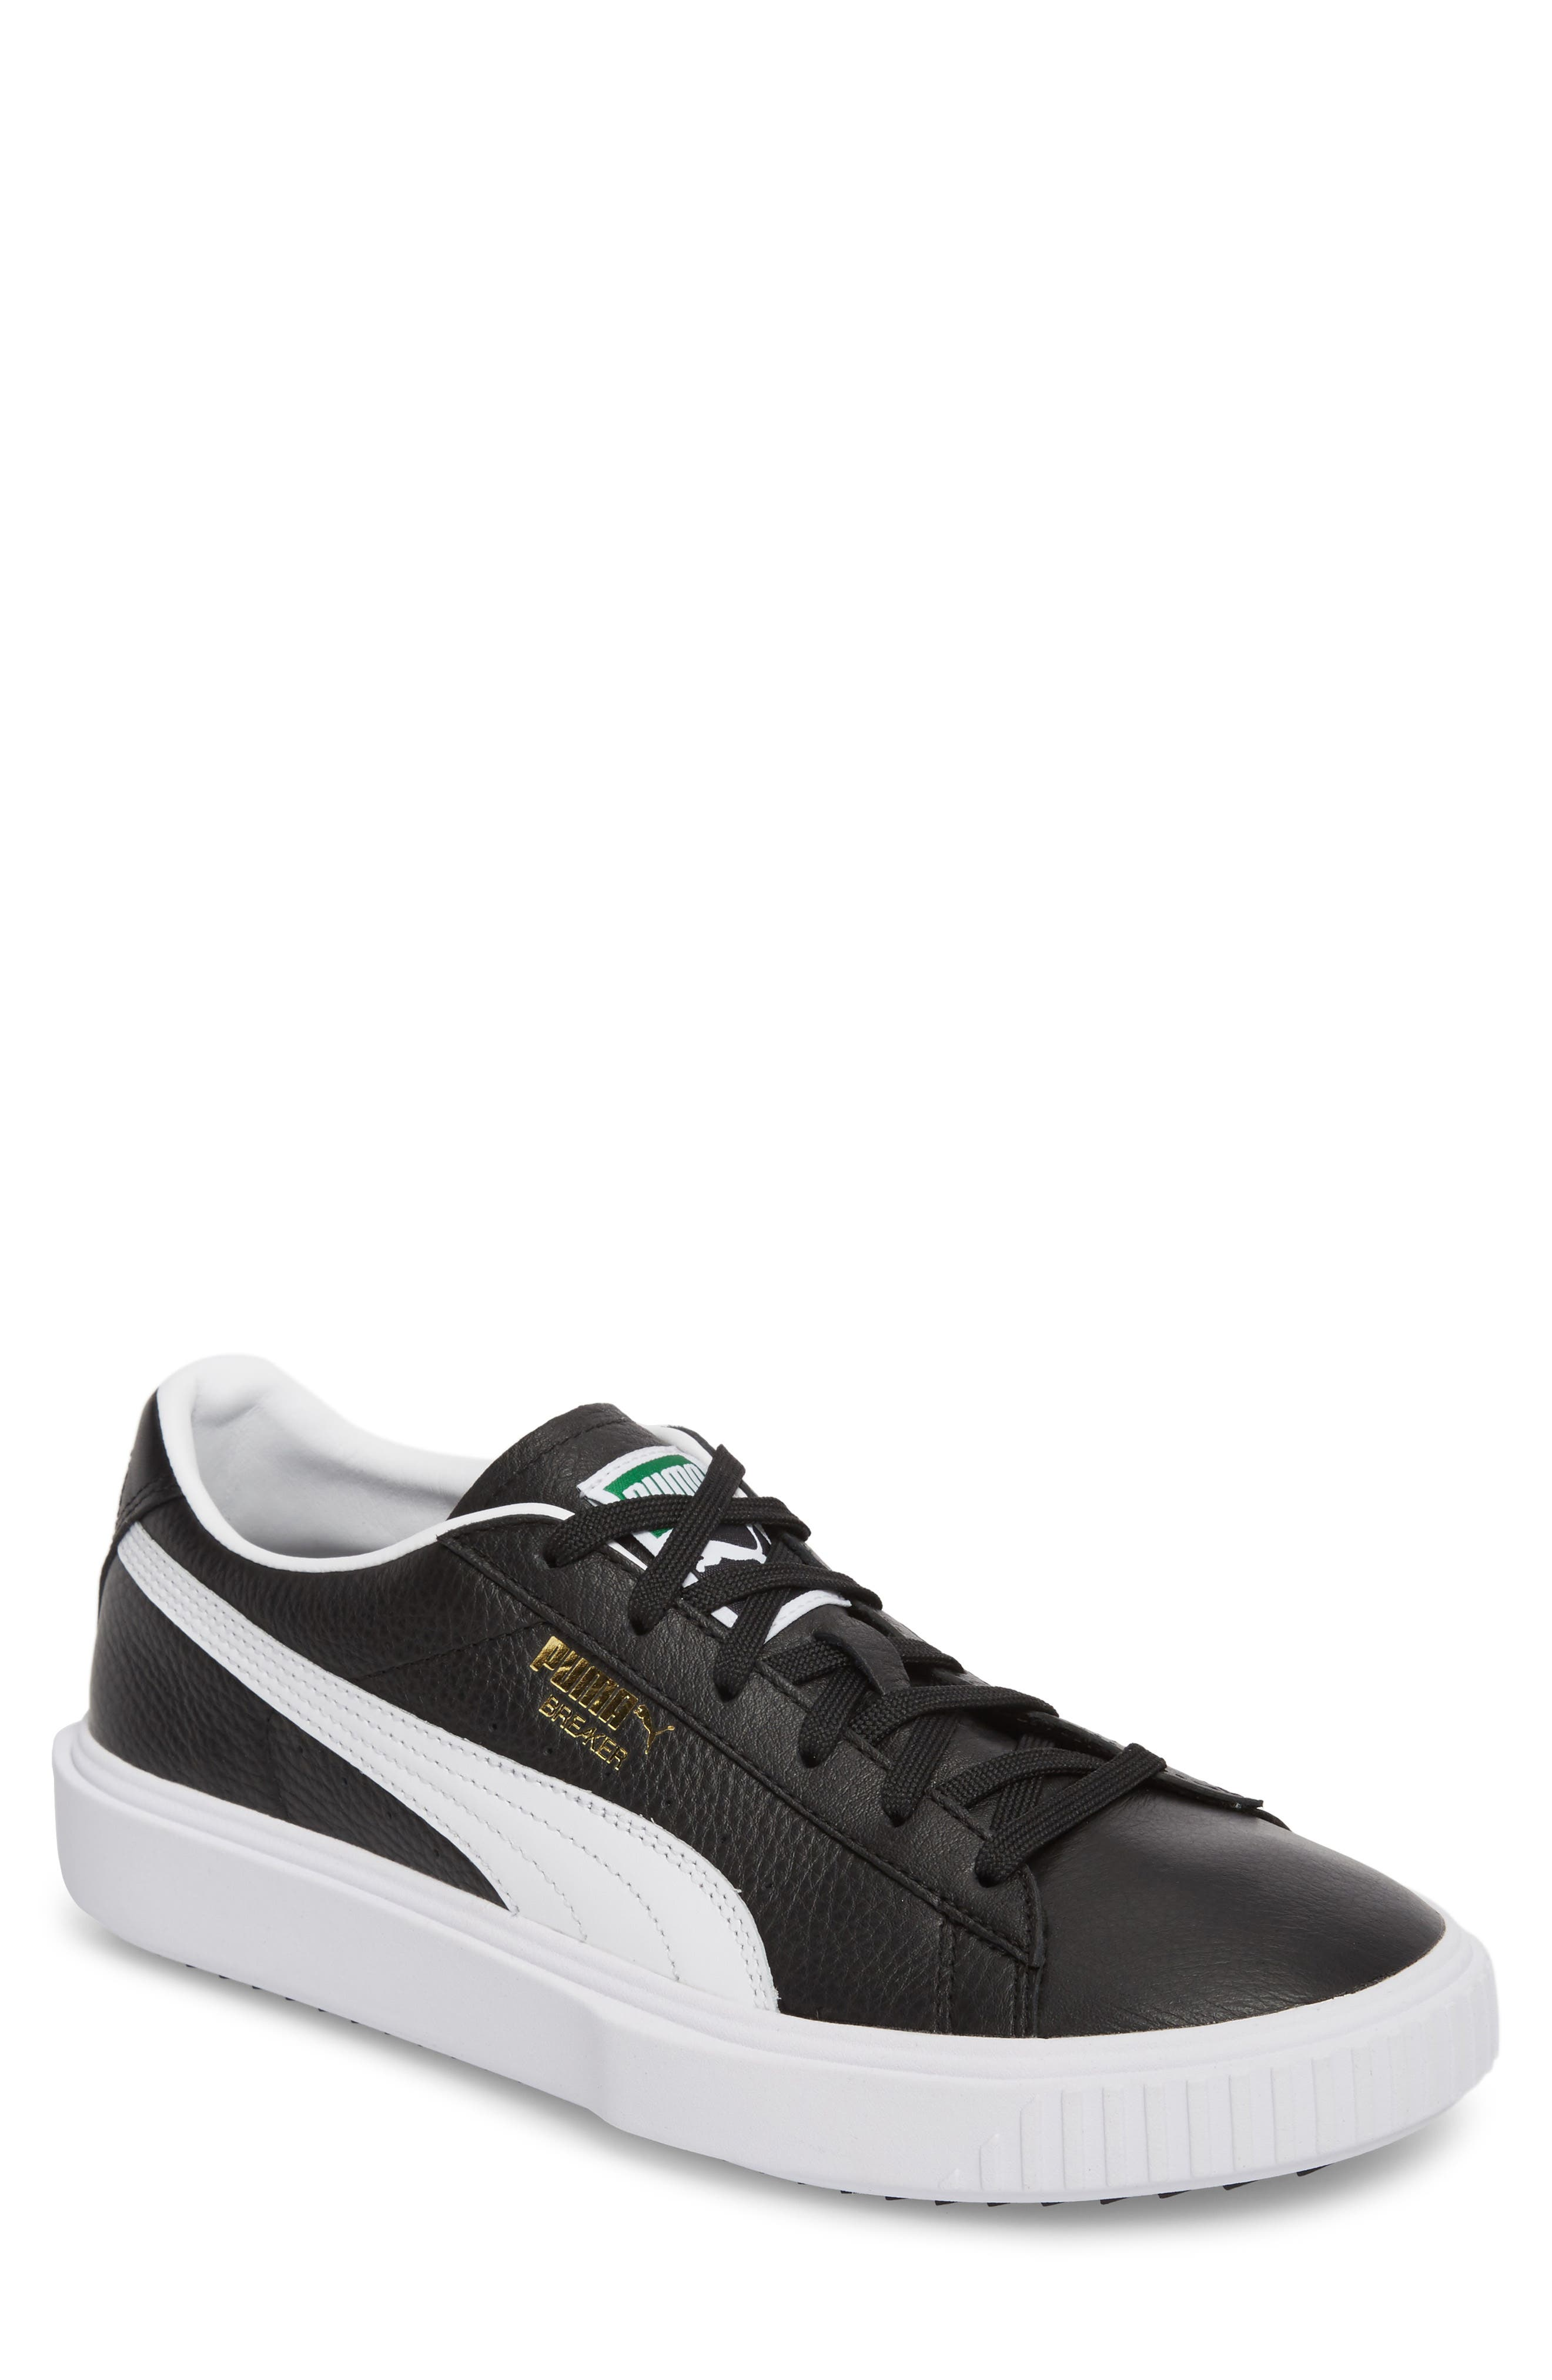 PUMA Breaker Low Top Sneaker (Men)